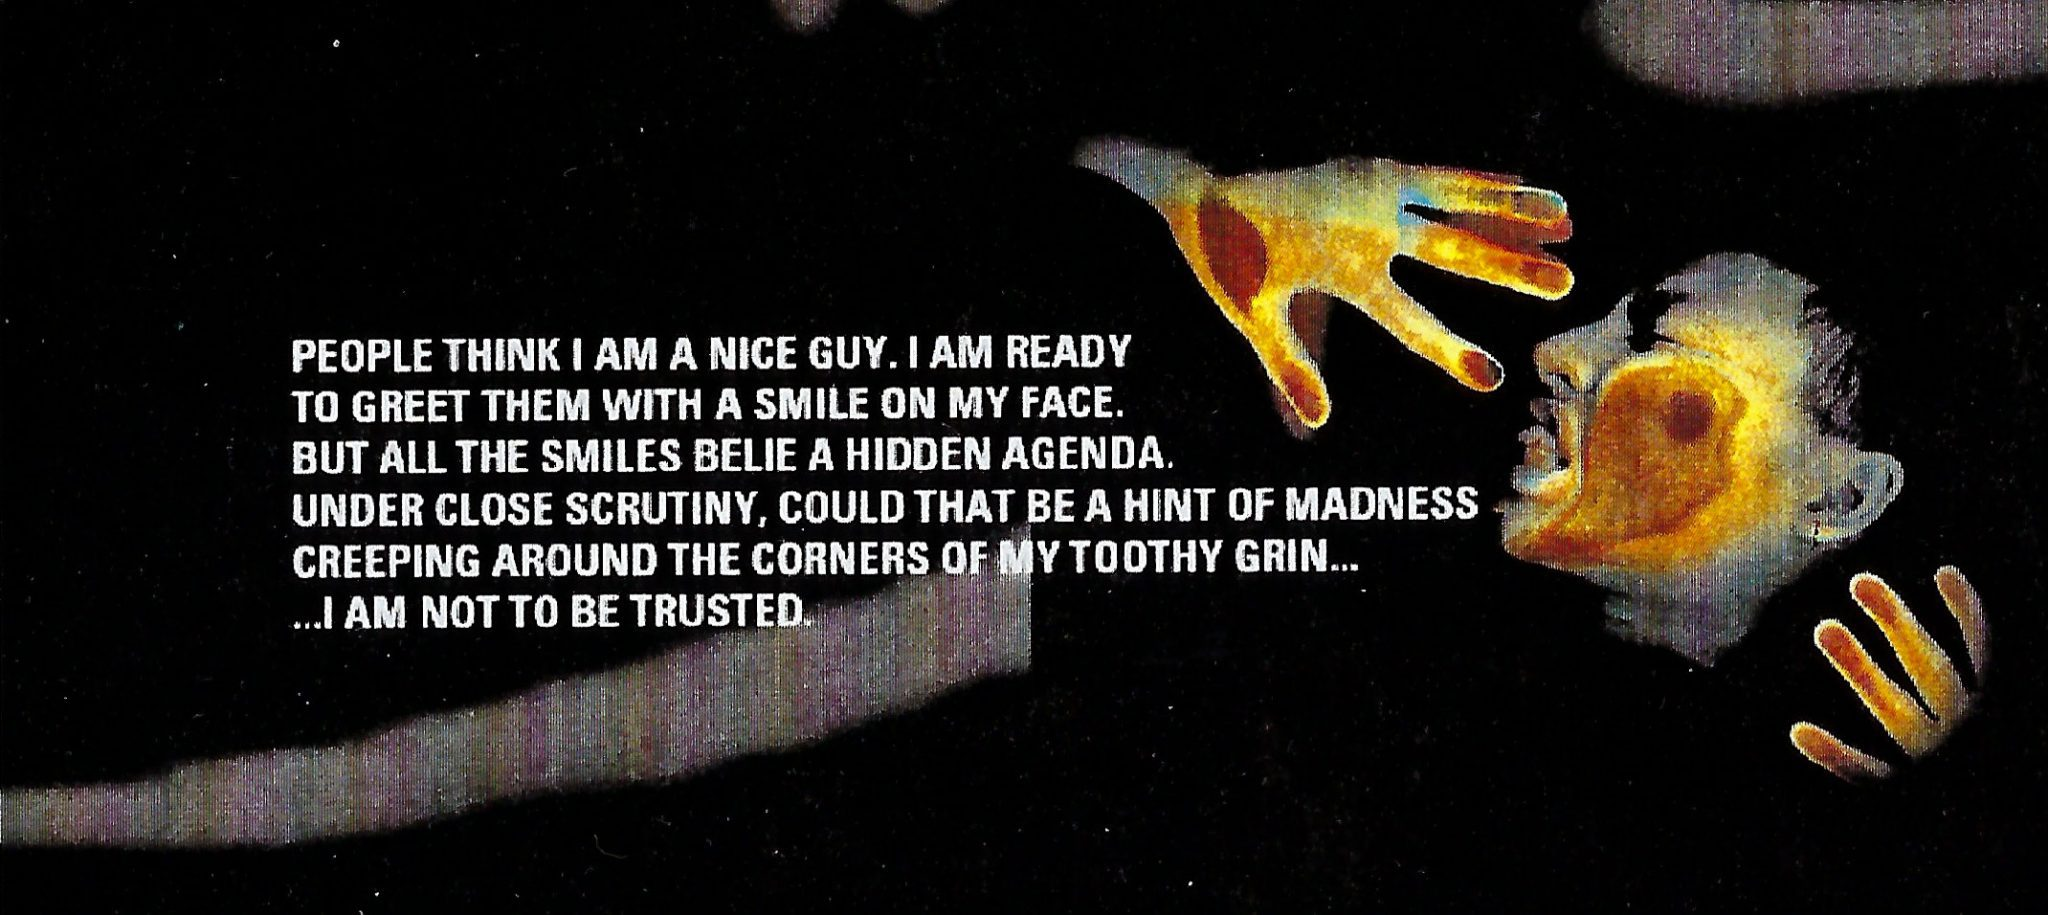 People think I am a nice guy. I am ready to greet them with a smile on my face... I am not to be trusted.